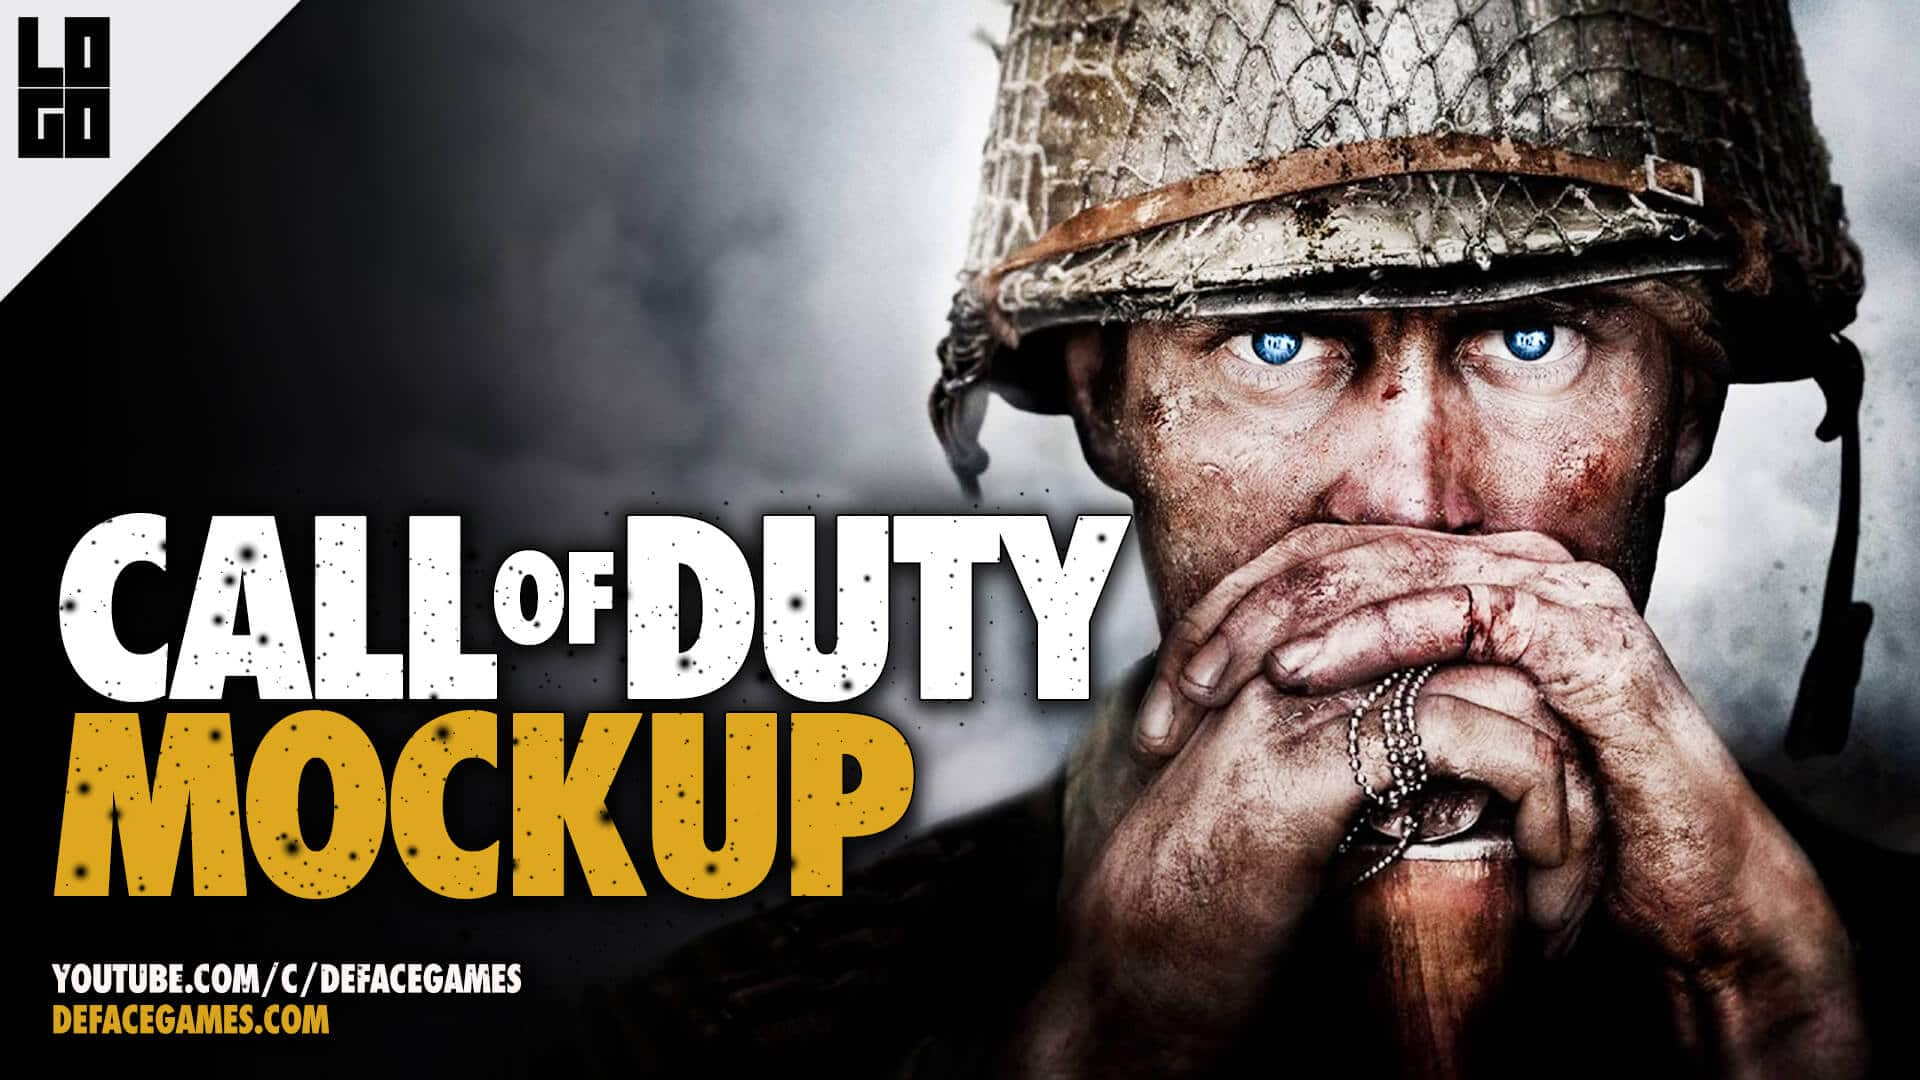 Call Of Duty Ww2 Poster And Thumbnail Psd Freebie Deface Games